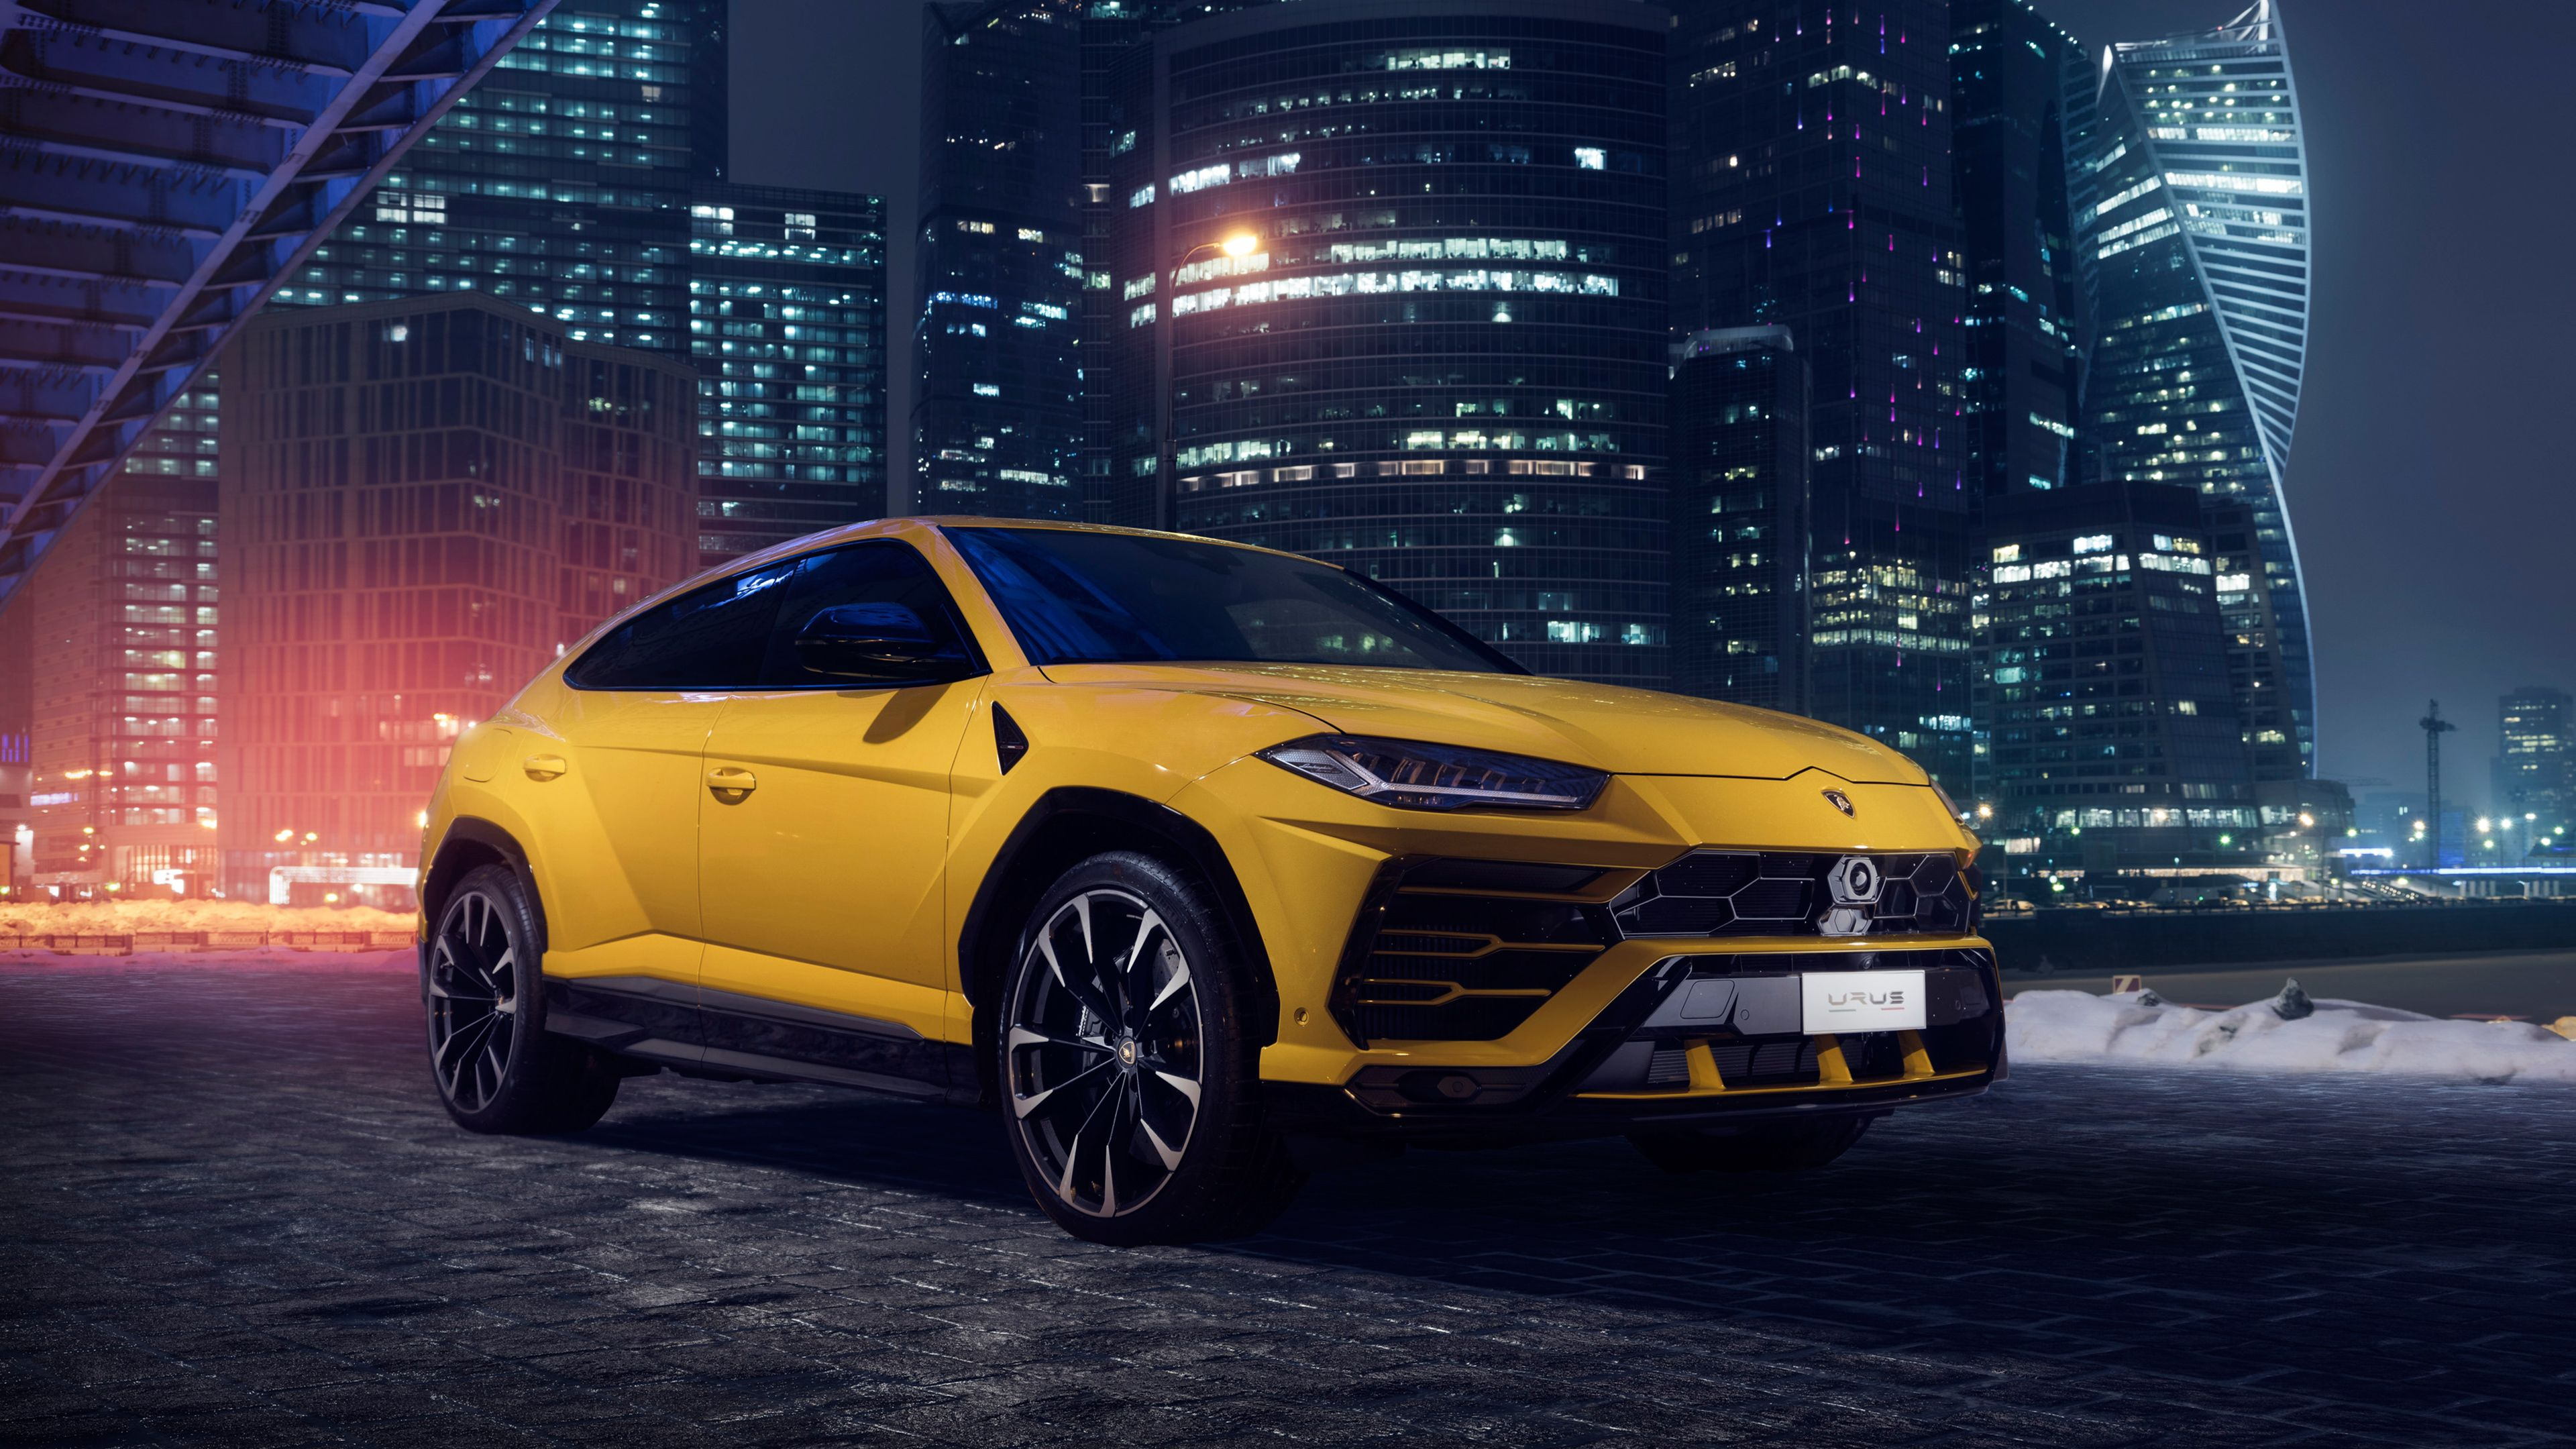 Wallpaper 4k Lamborghini Urus 4k 2018 2018 Cars Wallpapers 4k